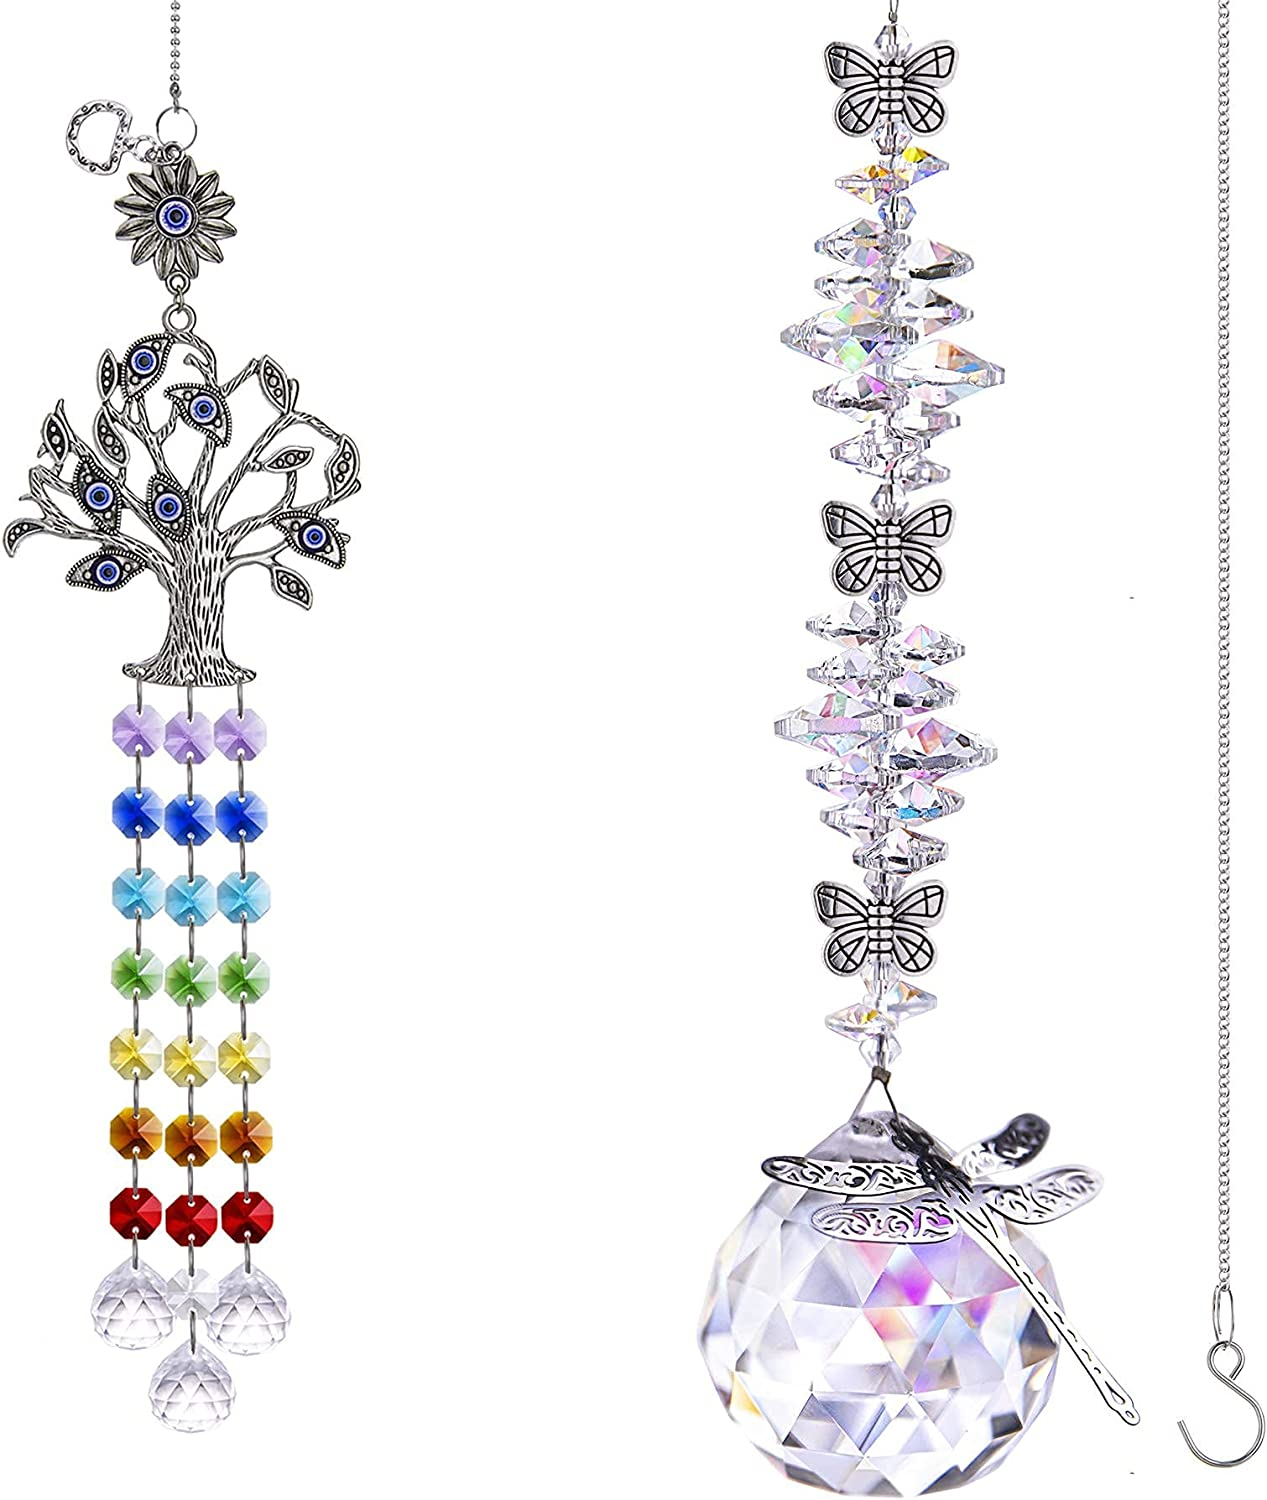 Tree of Life Complete Free Shipping and Dragonfly Crystal Austin Mall Hanging Suncatcher Butterfly